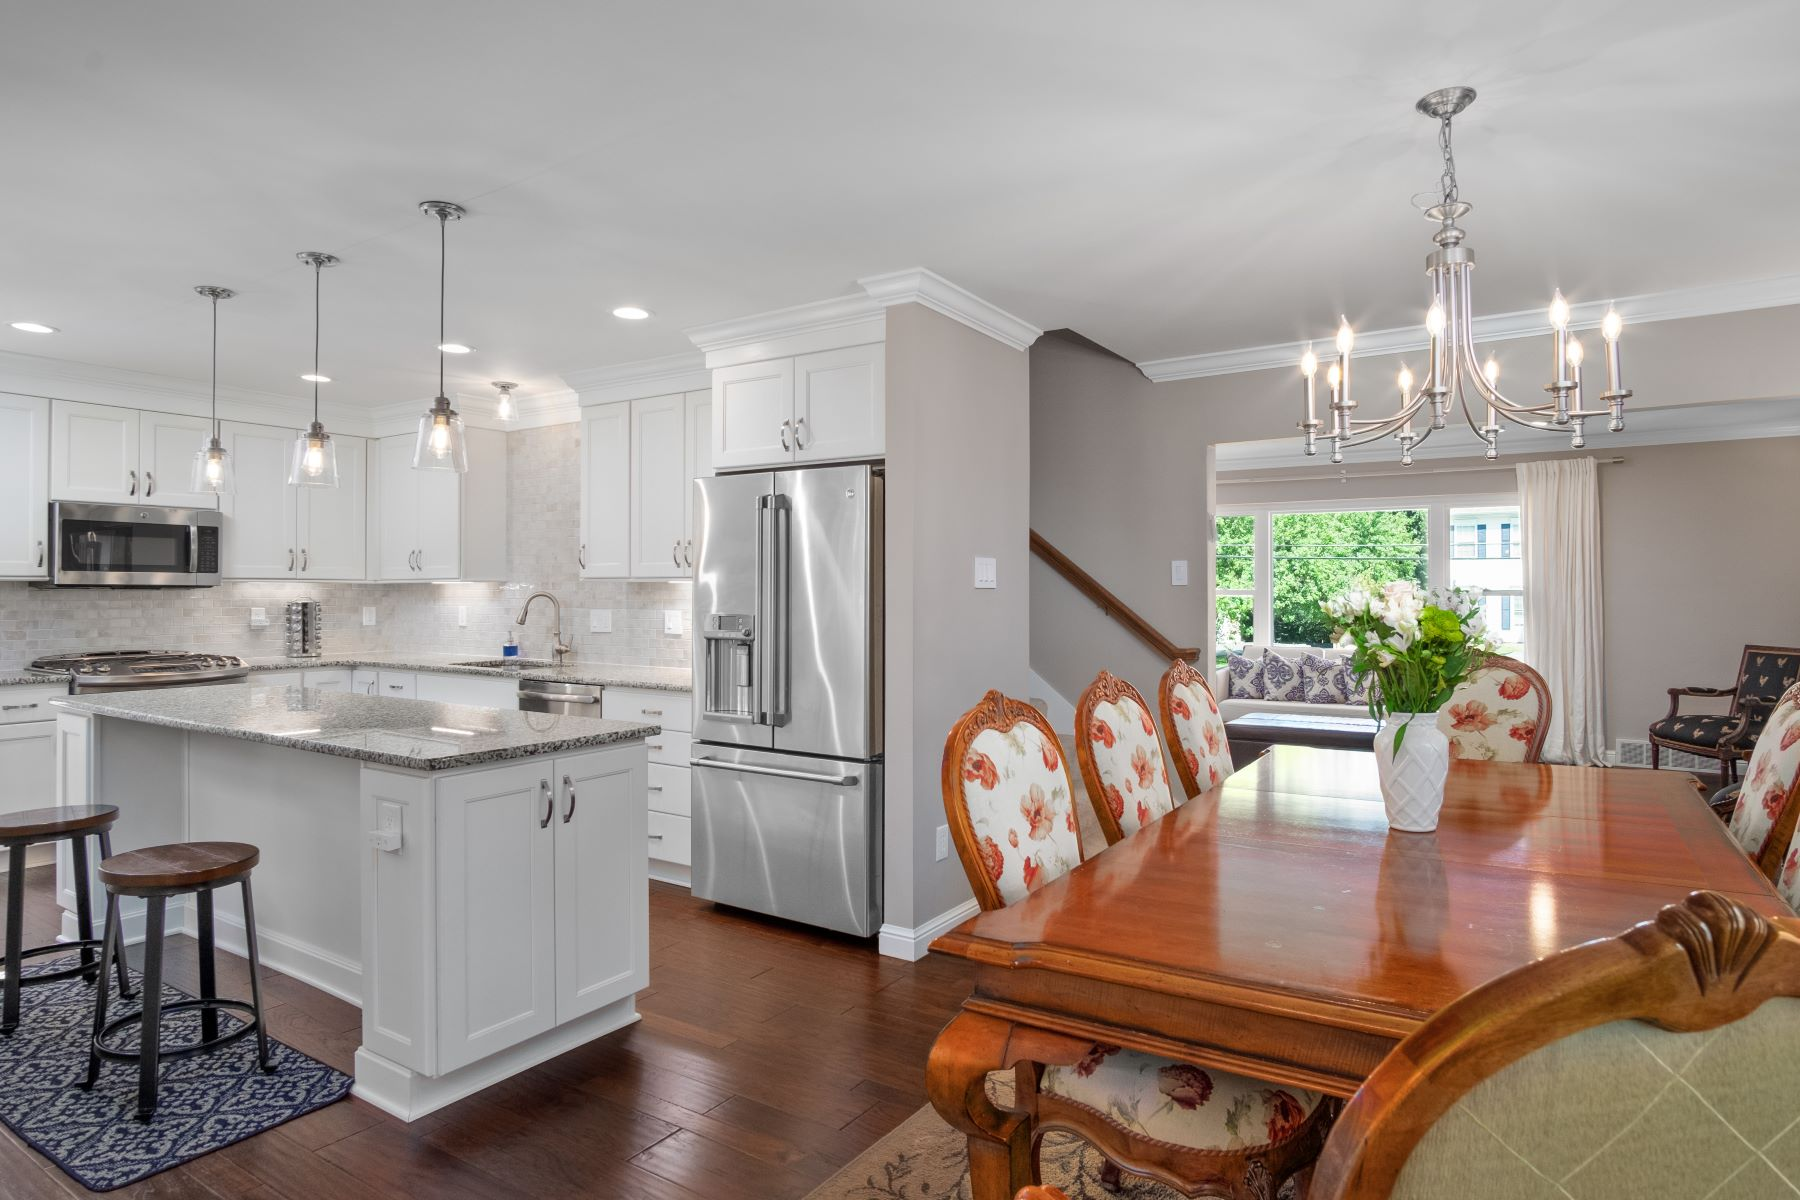 Additional photo for property listing at Charming Cape Cod With Modern Touch 9250 Old Bonhomme Road Olivette, Missouri 63132 United States